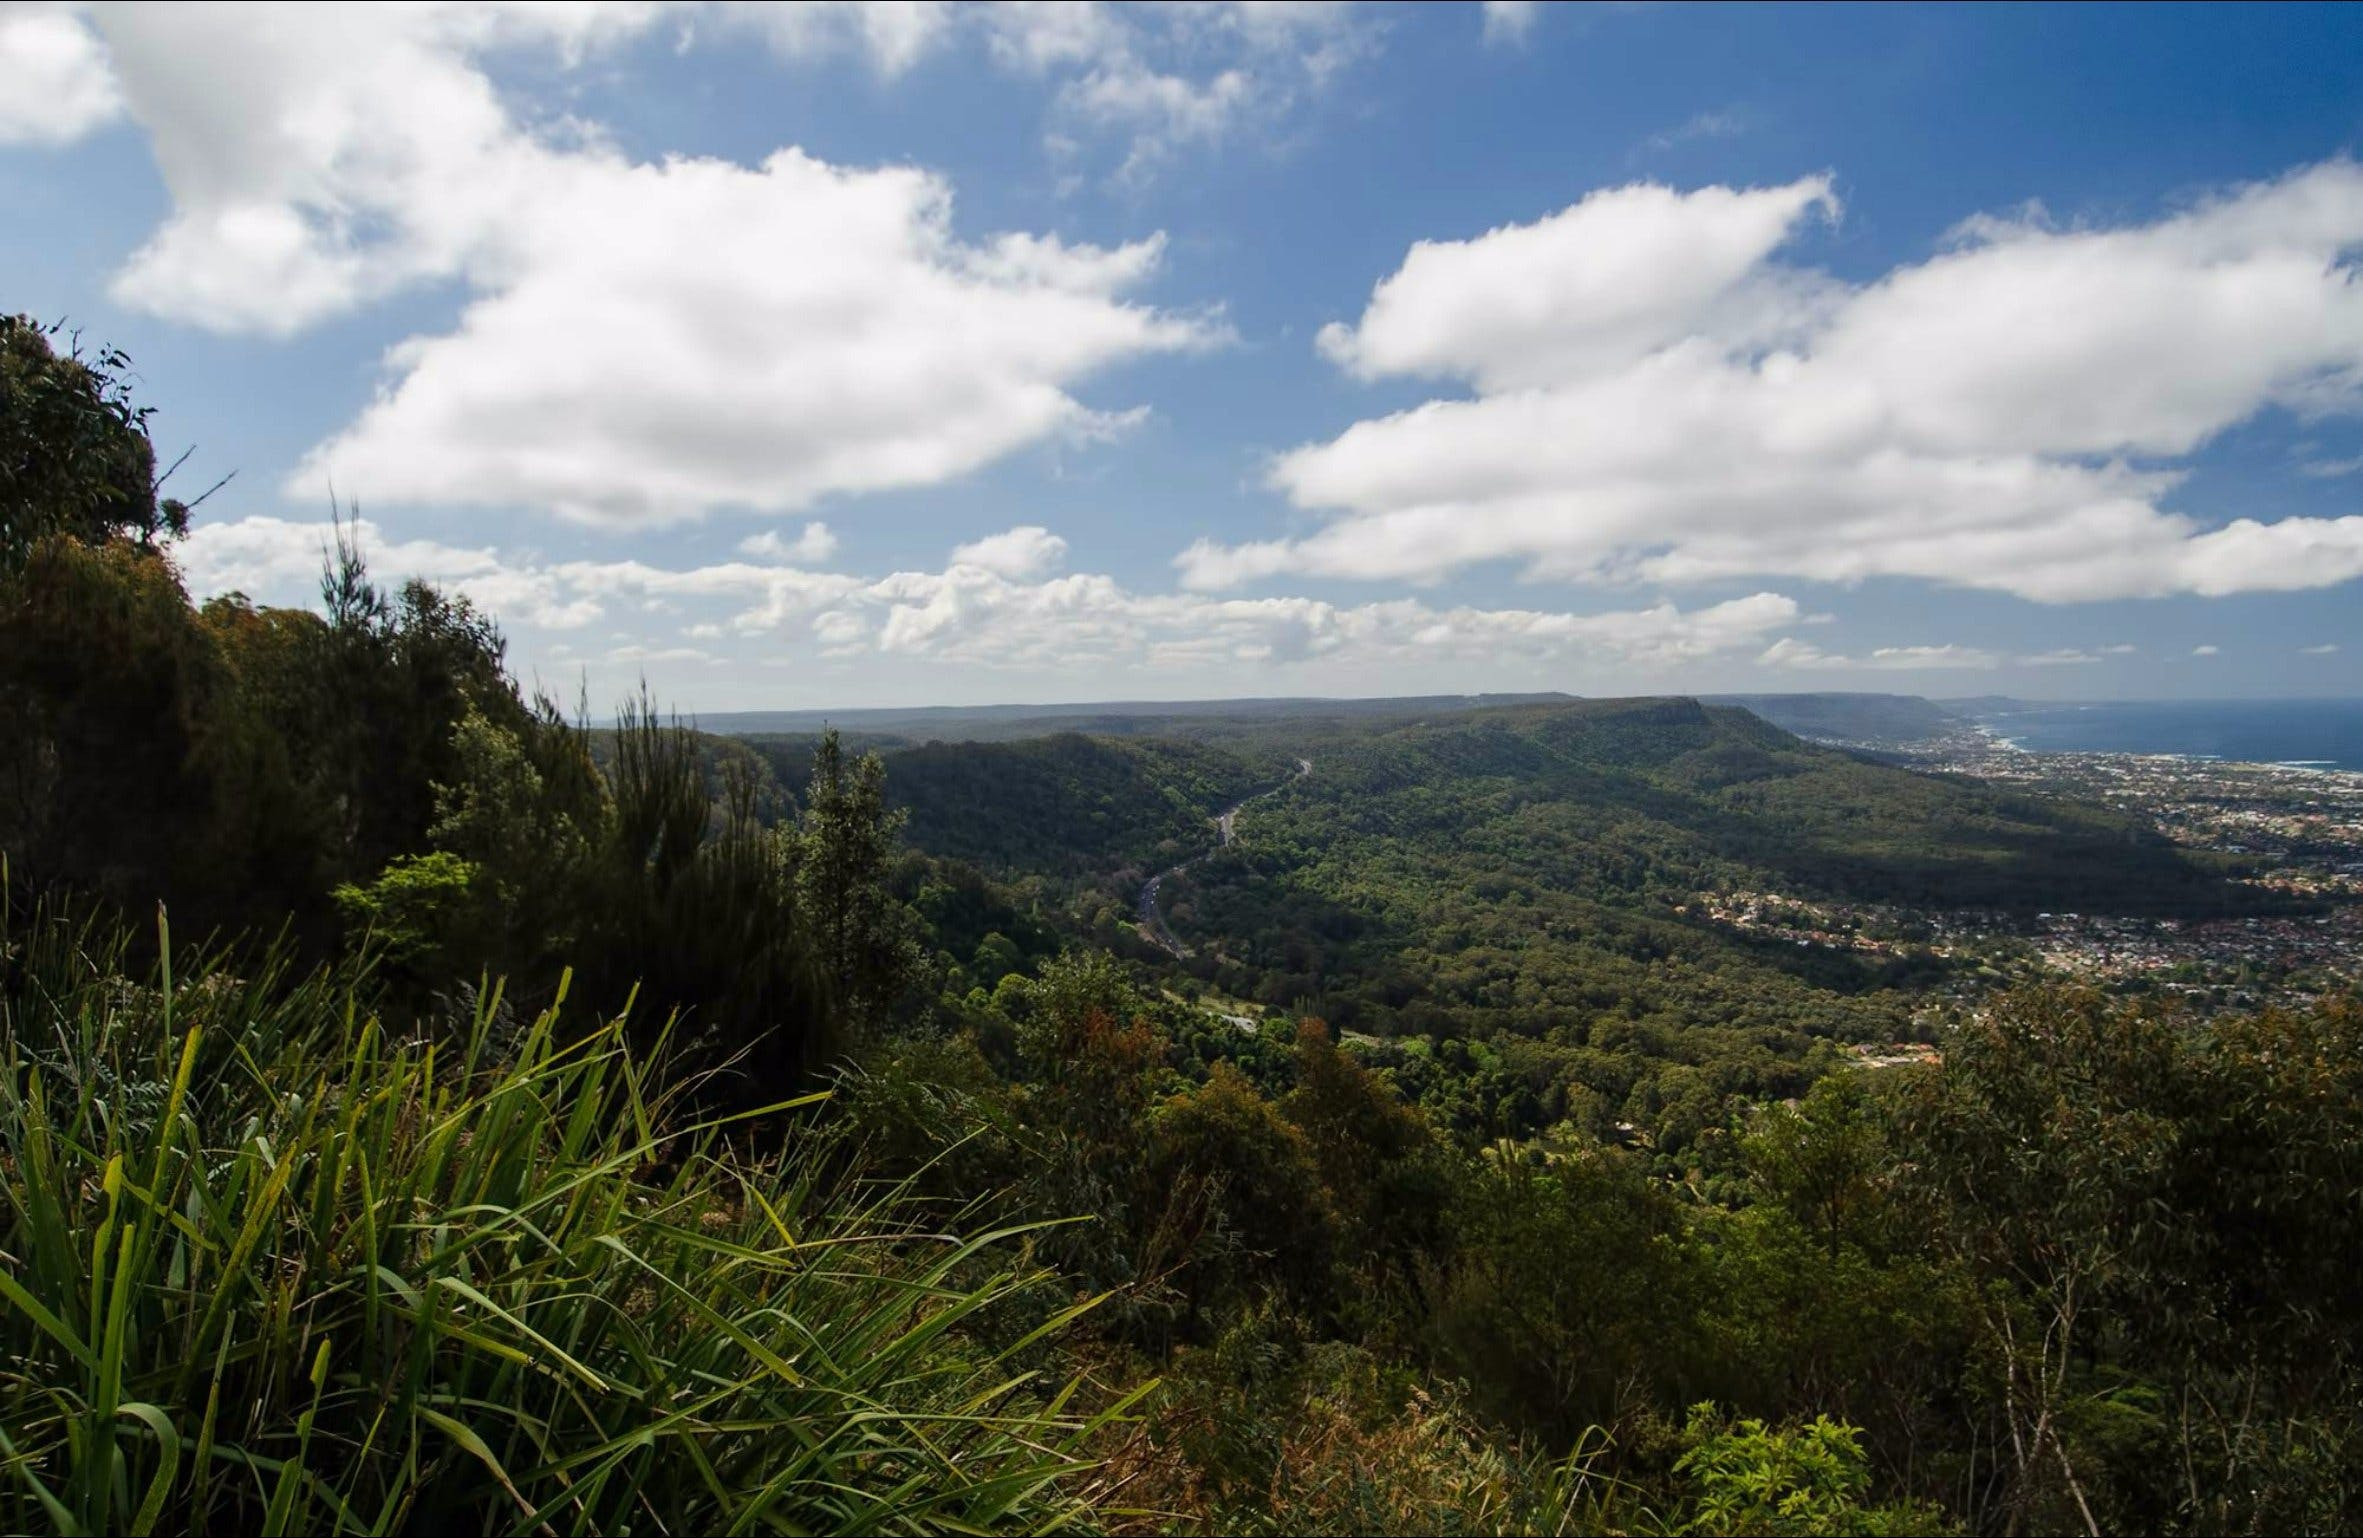 Illawarra Escarpment State Conservation Area